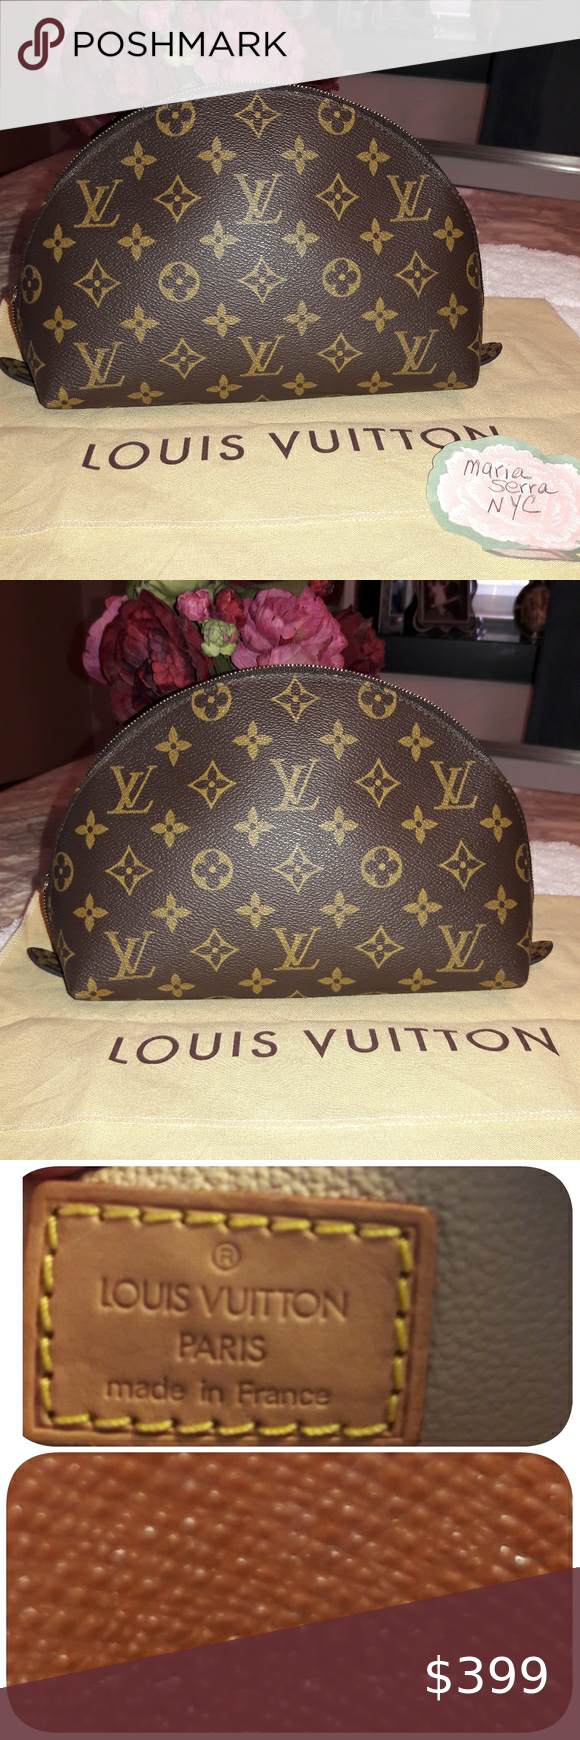 Authentic Louis Vuitton Cosmetic GM size in 2020 Louis